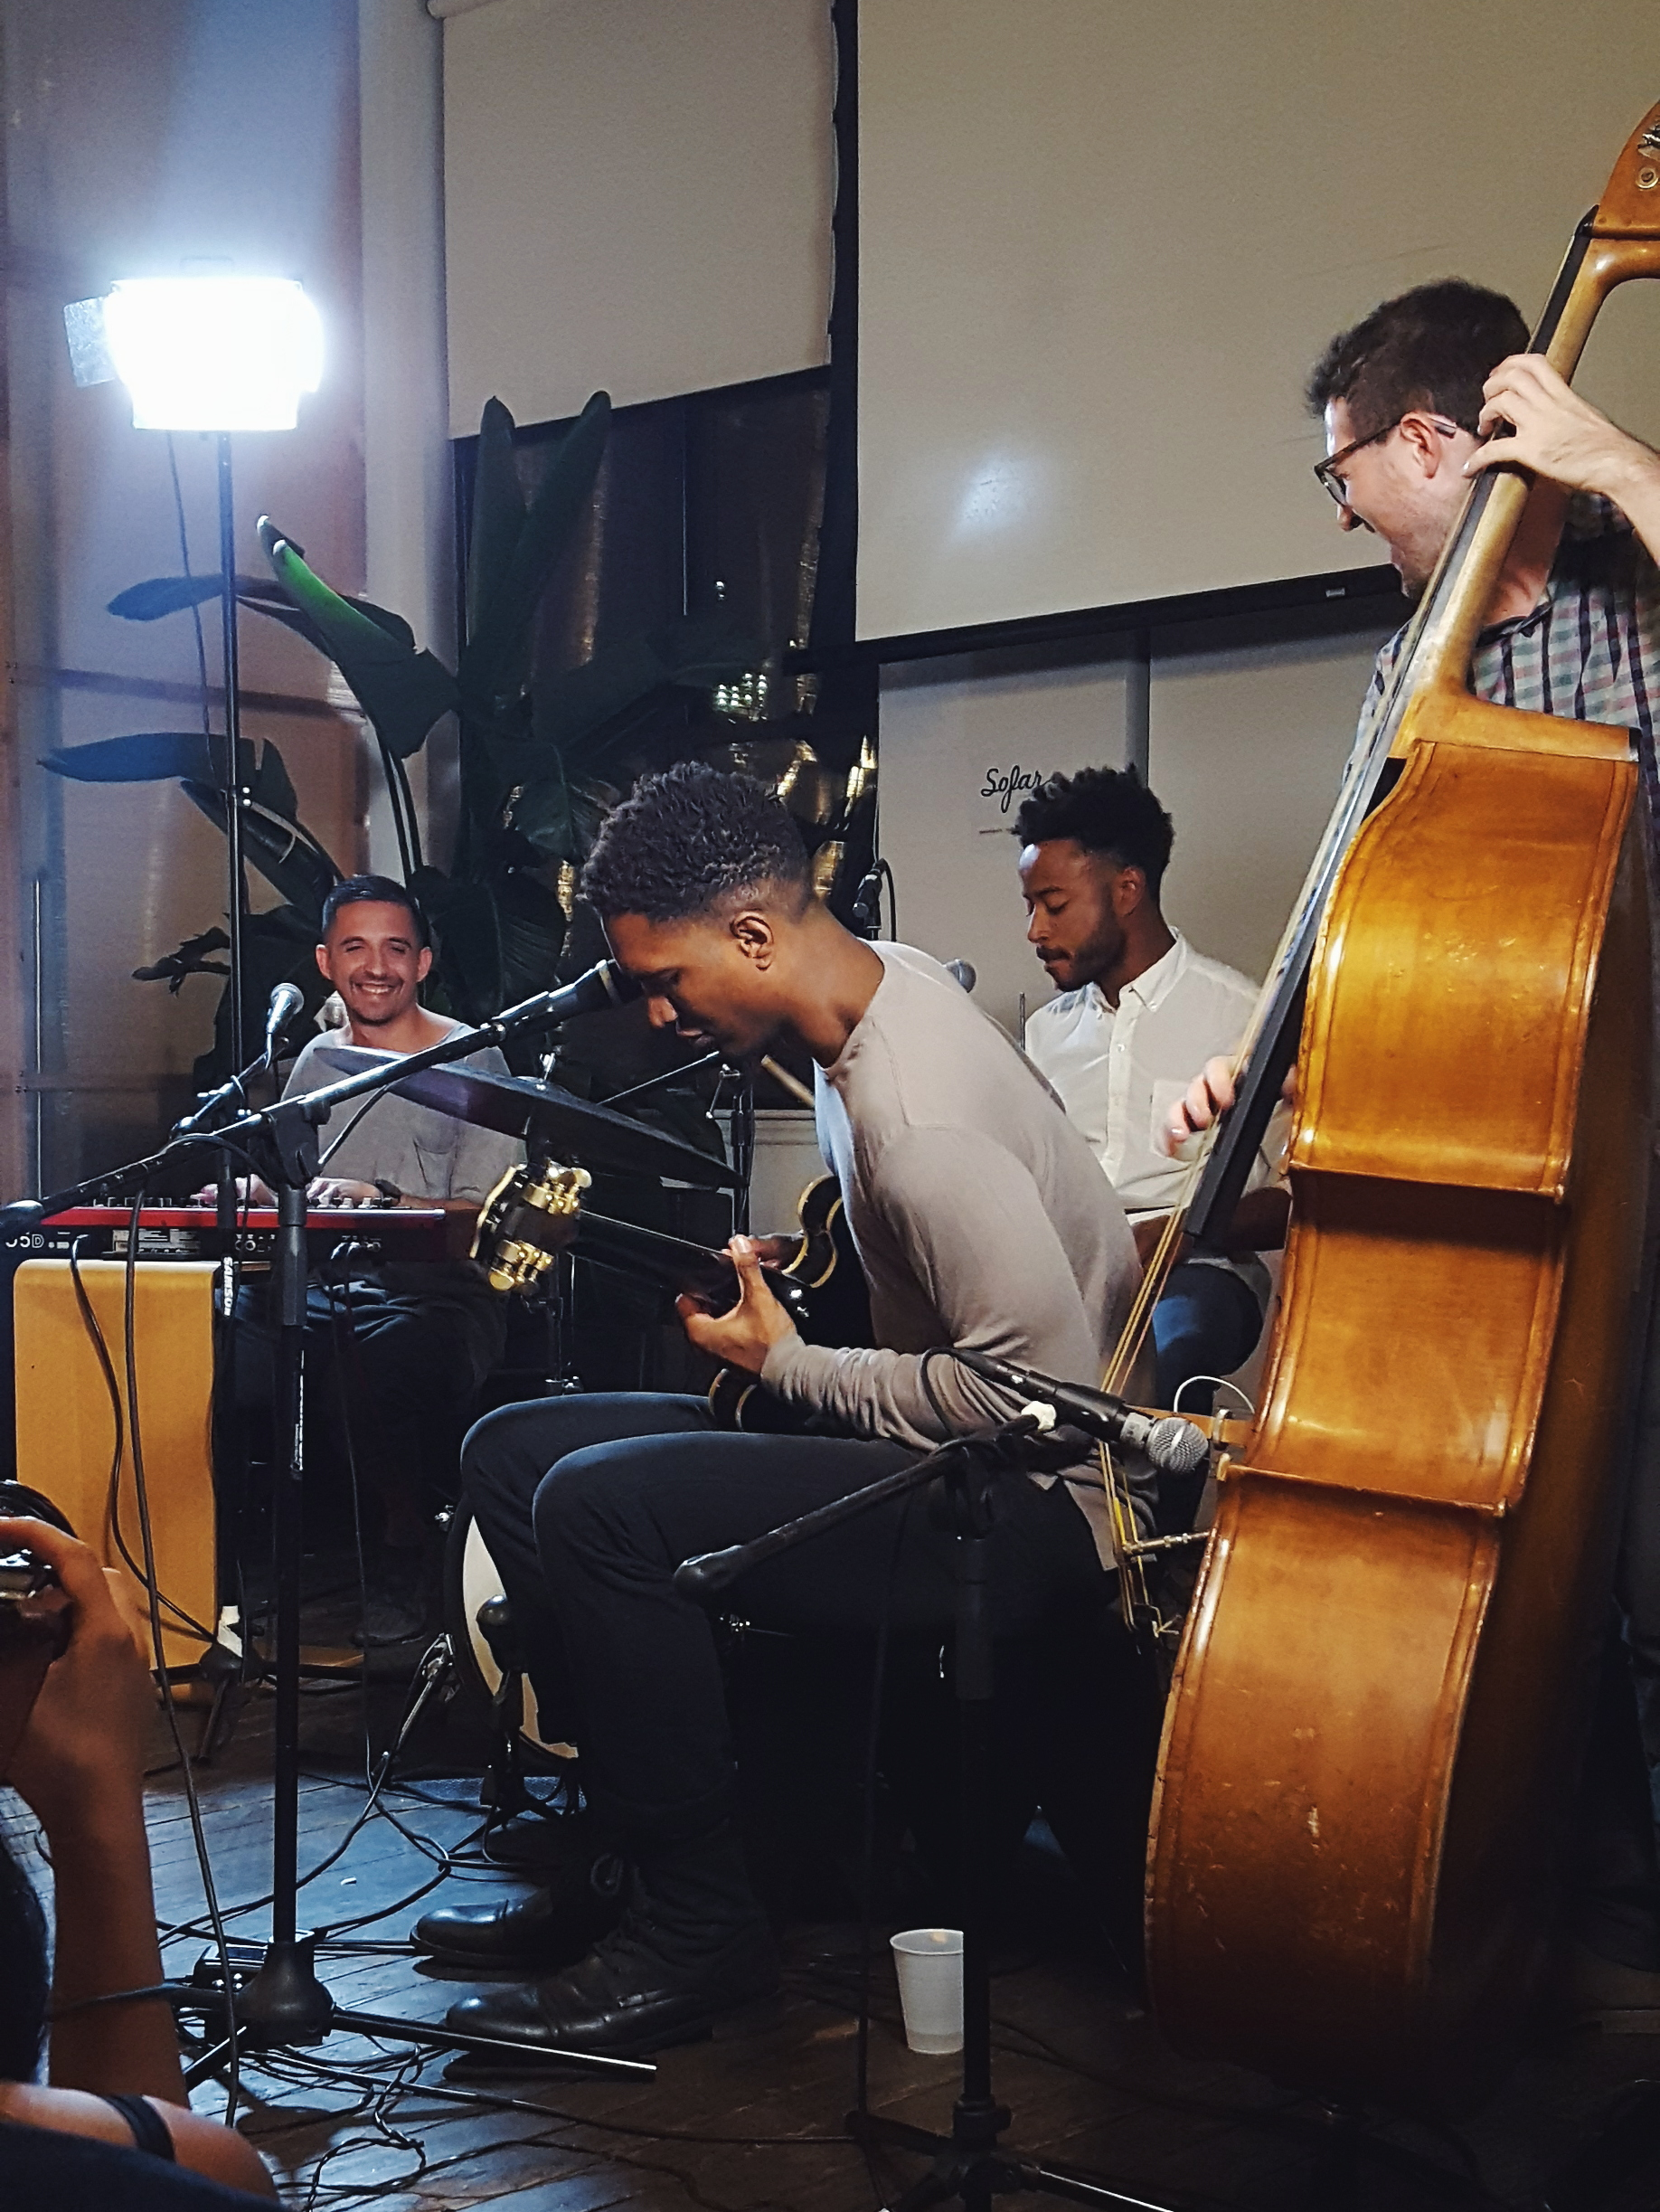 Sugar Sugar @So Far Sounds NYC which provides intimate music events with local acts in 274 cities around the world.